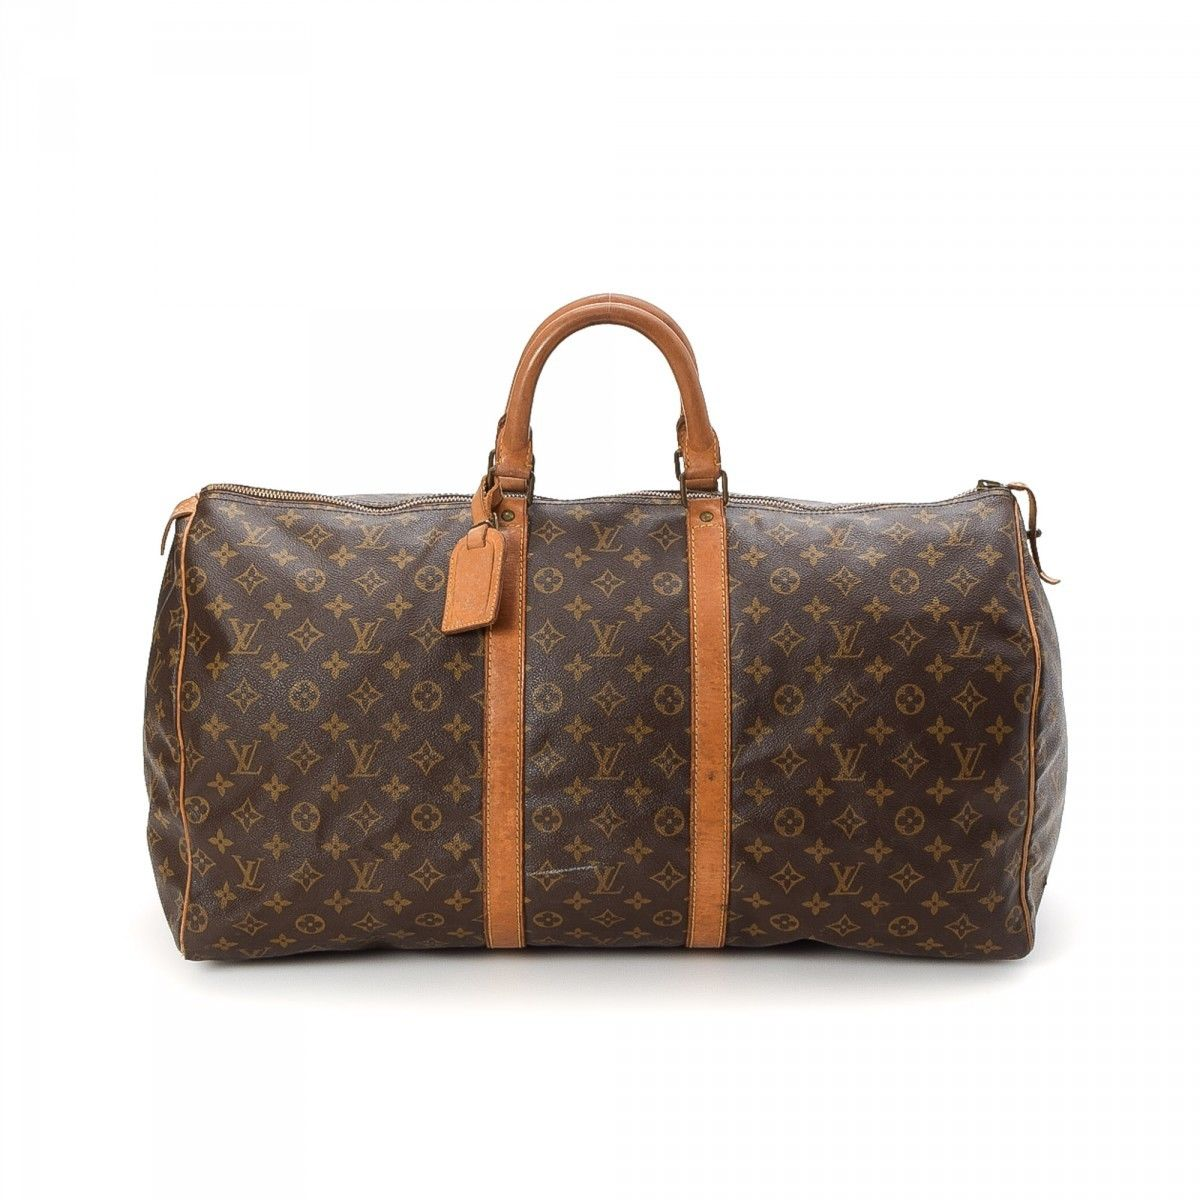 louis vuitton keepall 55 monogram coated canvas lxrandco pre owned luxury vintage. Black Bedroom Furniture Sets. Home Design Ideas